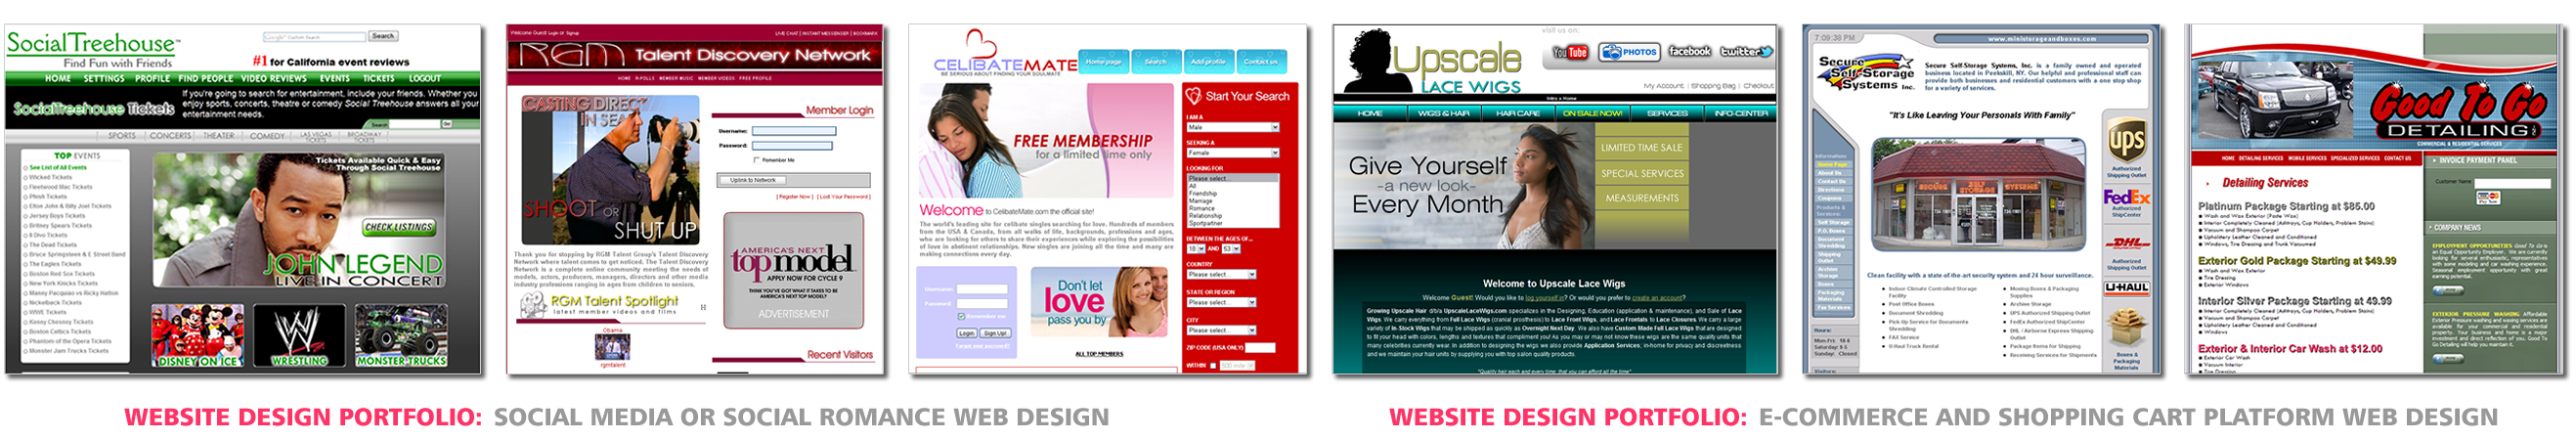 Social Media or Social Romance Web Design, E-Commerce and Shopping Cart Platform Web Design